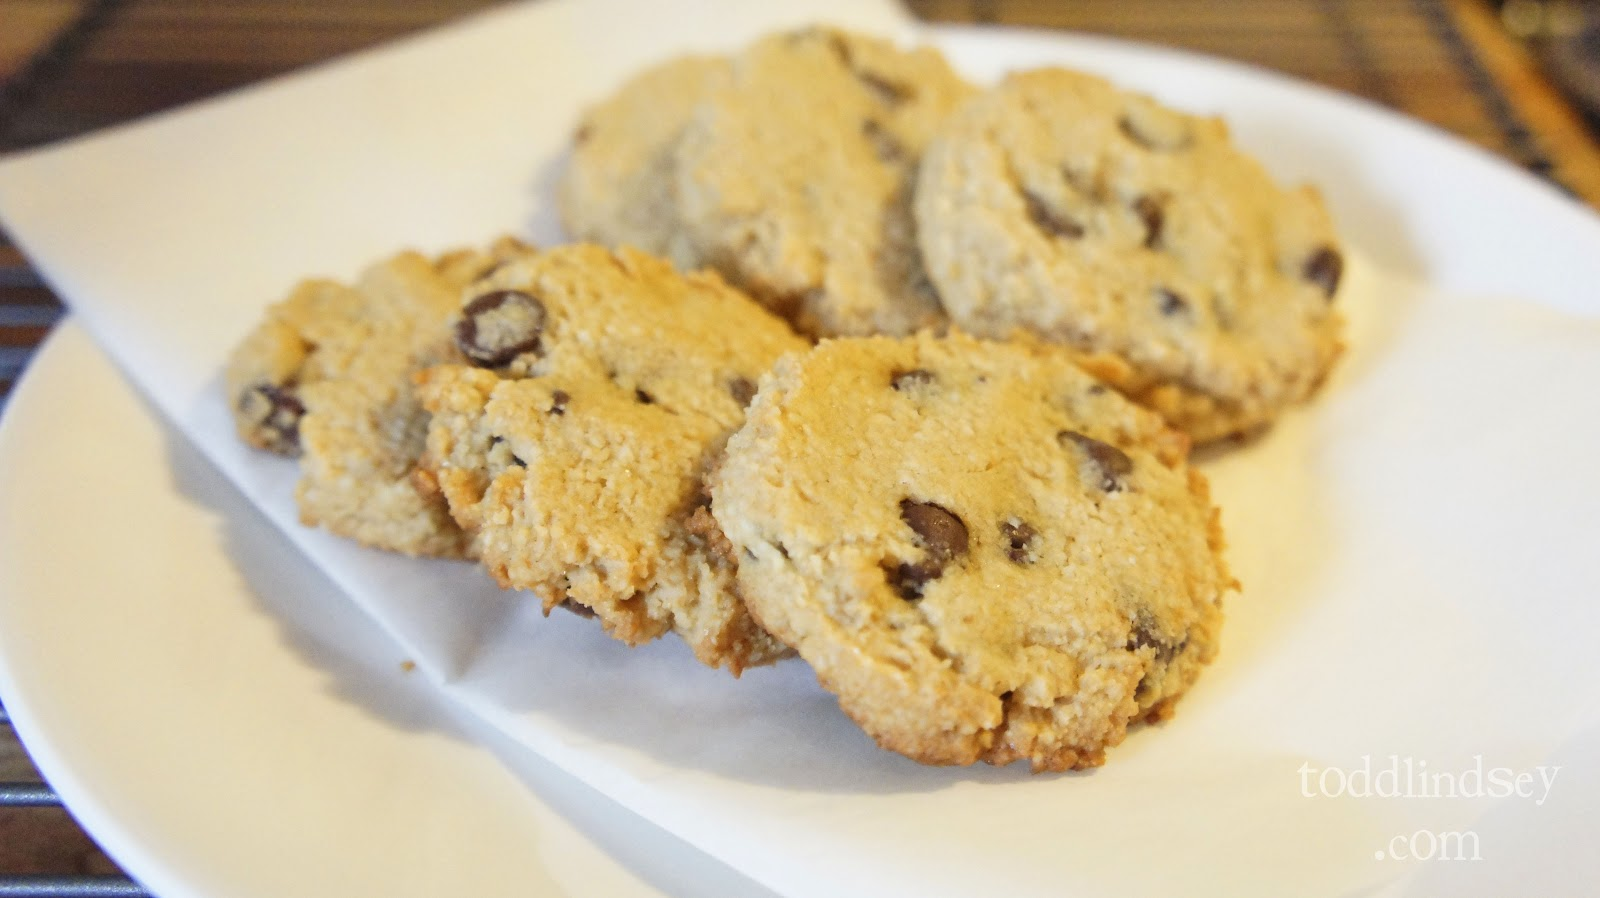 Domer Home: Chocolate Chip Cookies (Low Carb)